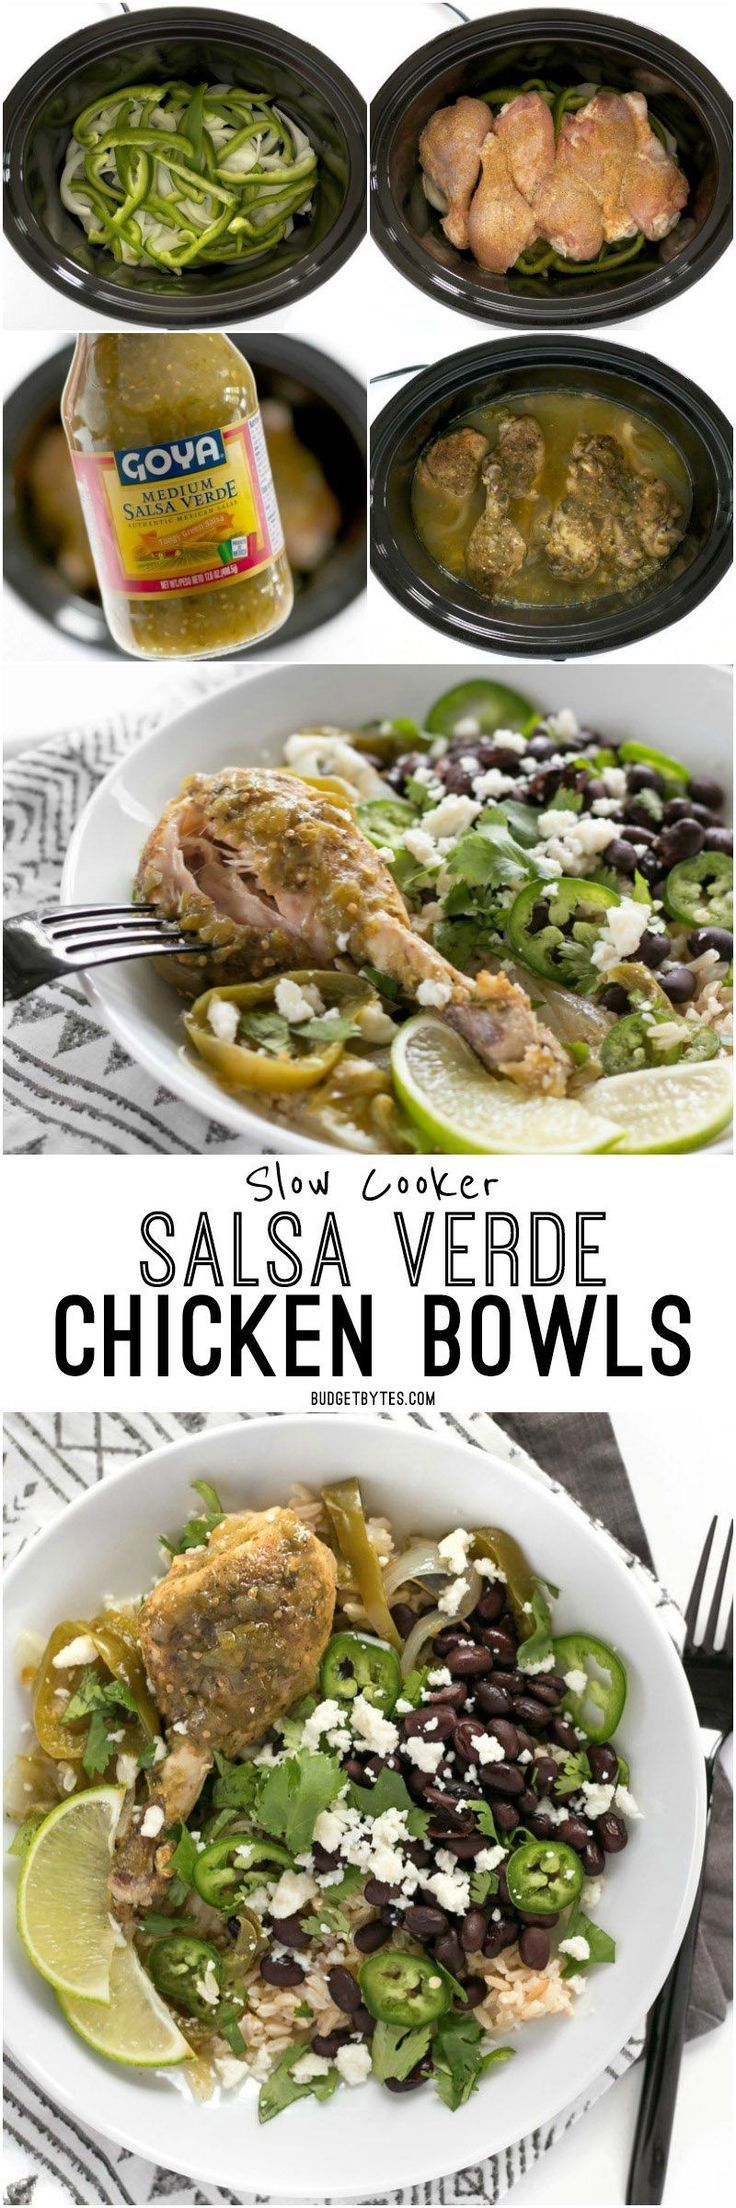 Slow Cooker Salsa Verde Chicken is a fast, easy, and flavorful dinner full of southwest flavors.